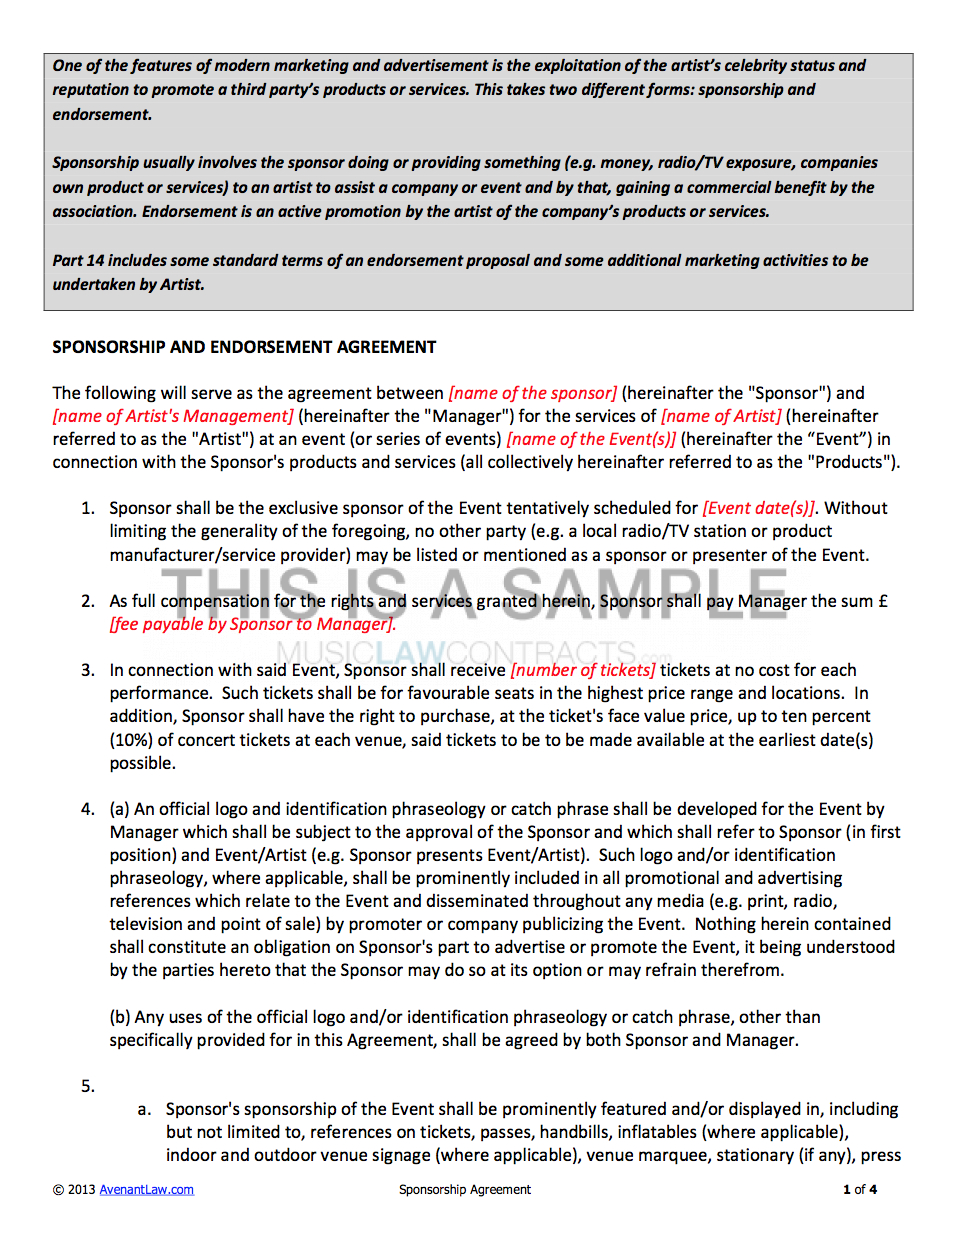 Sponsorship Contract Template For Artists In Event Sponsorship Agreement Template